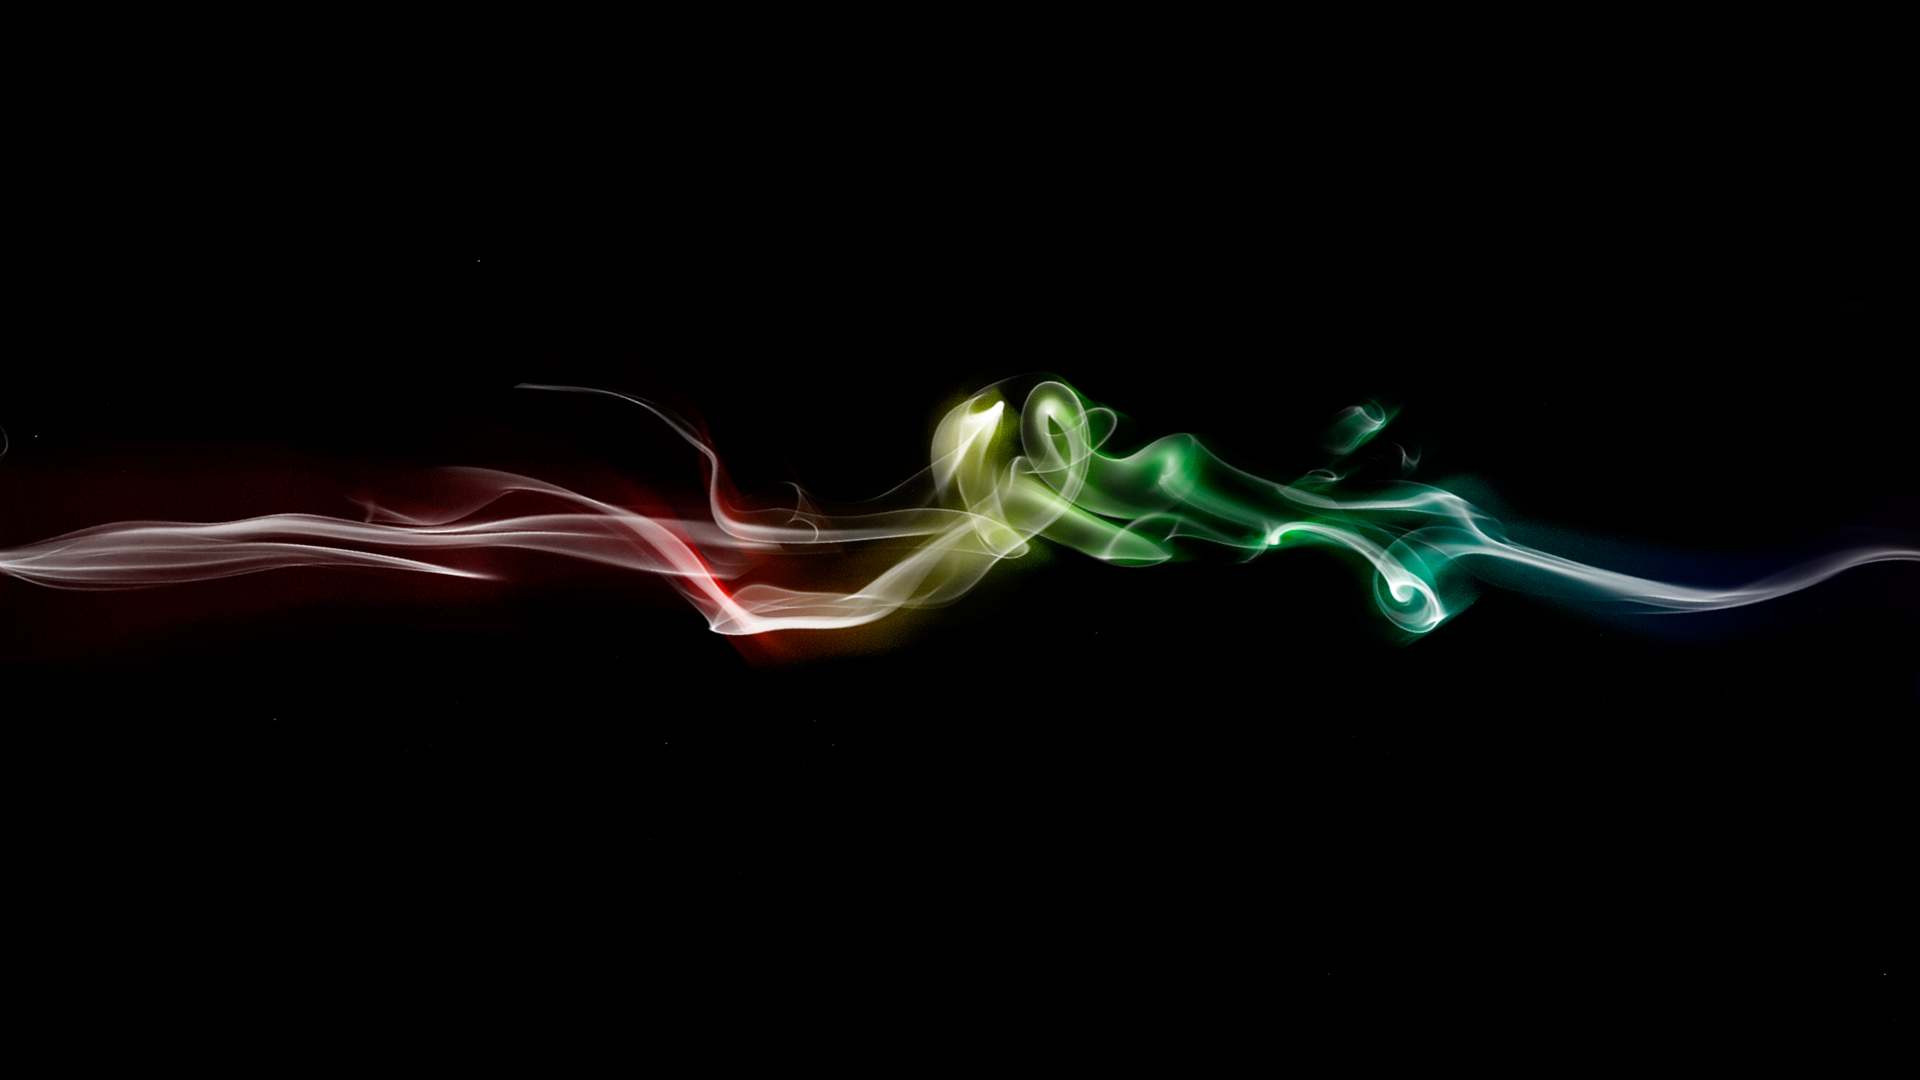 Hd Moving Backgrounds 1080p Black For Mac Love Pc Red Music Photoshop Photos Pics Wallpapers